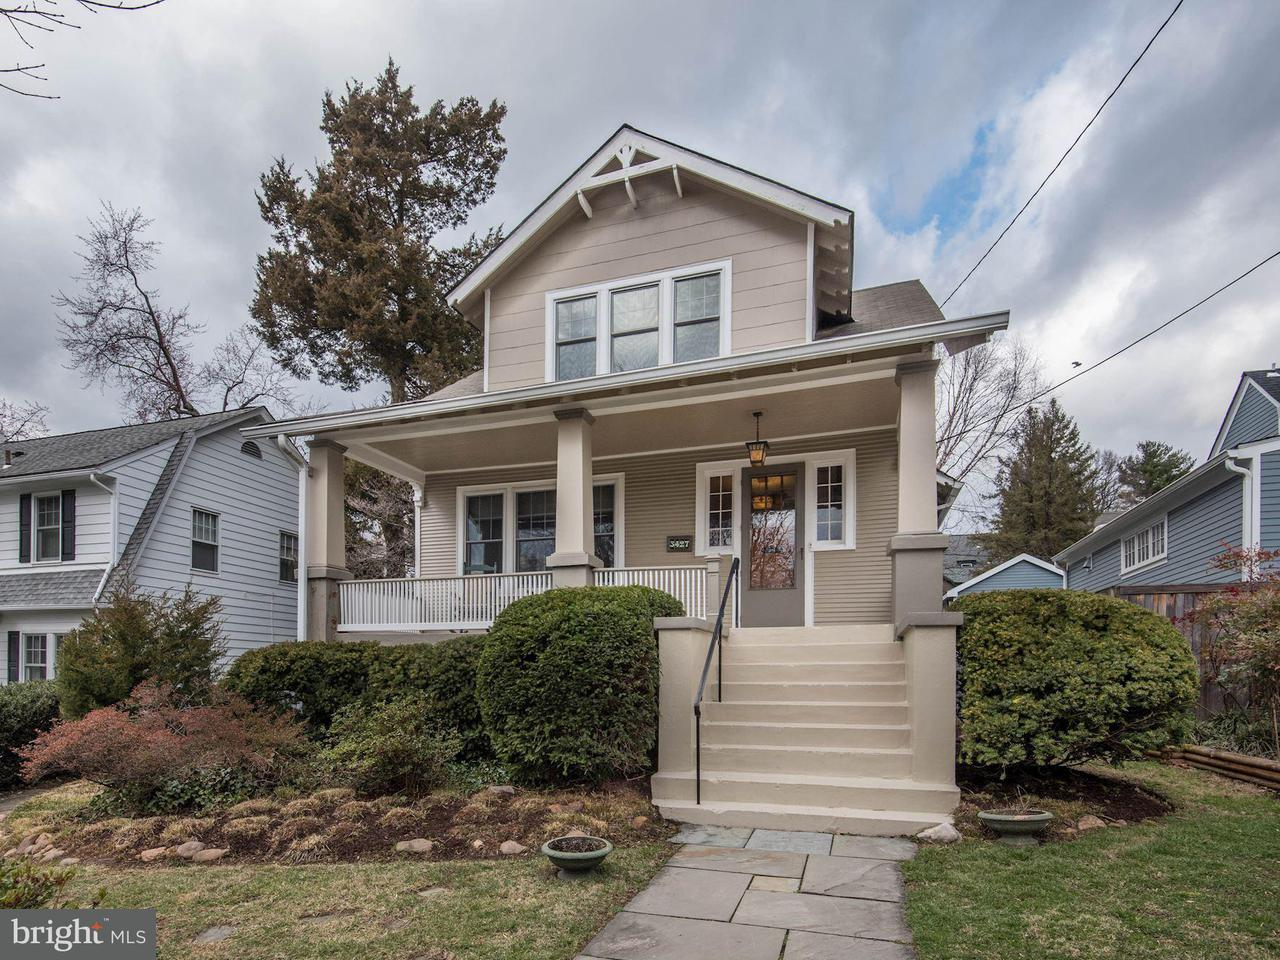 Single Family Home for Sale at 3427 Oliver St Nw 3427 Oliver St Nw Washington, District Of Columbia 20015 United States